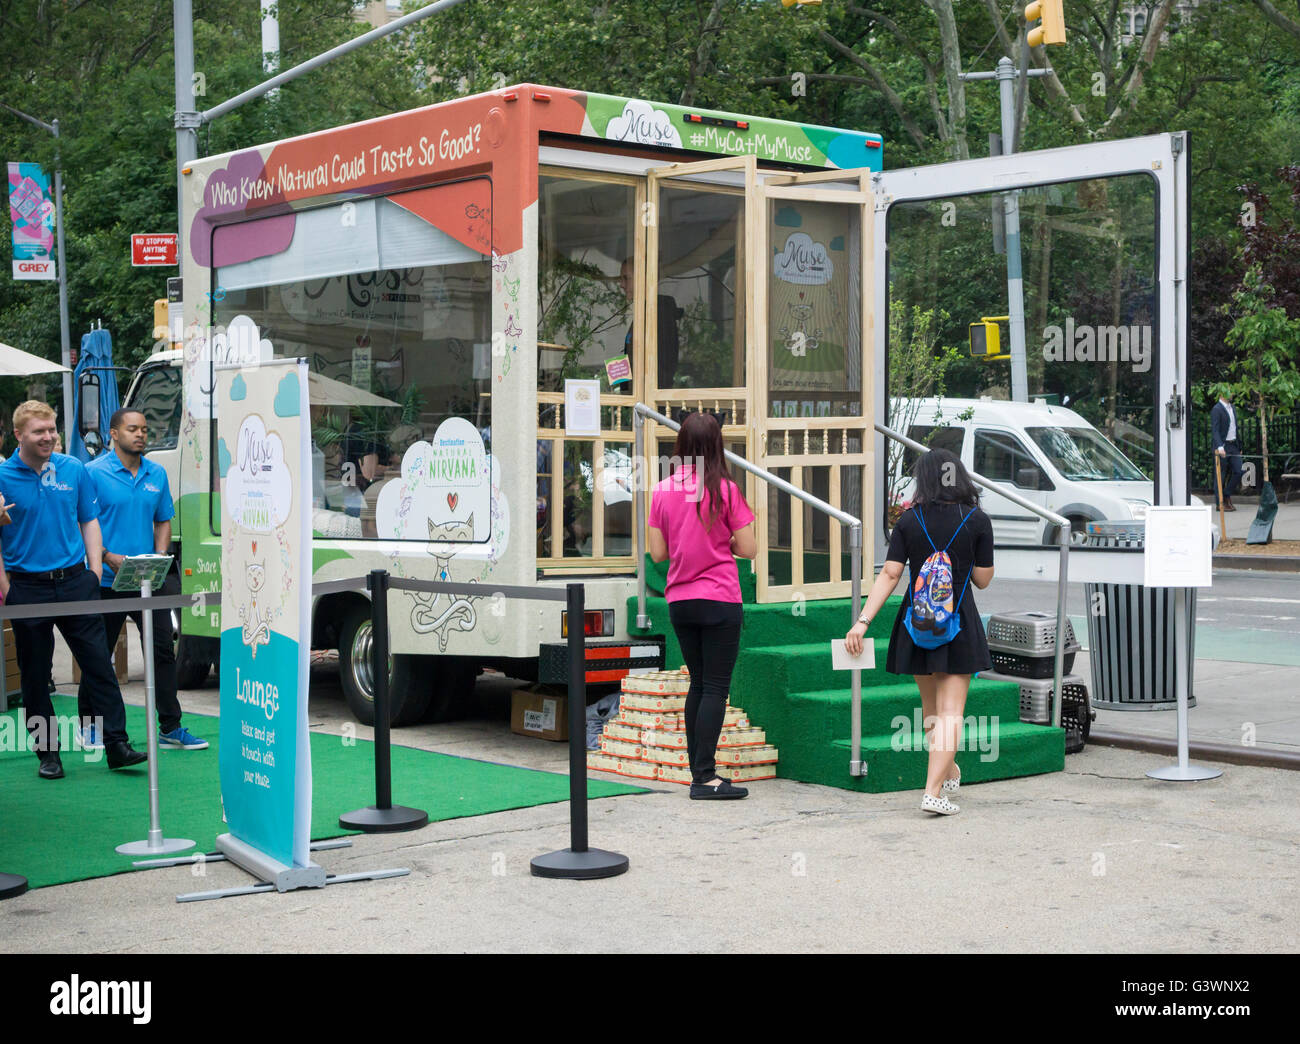 Branding event for Purina Muse cat food in Flatiron Plaza in New York on Wednesday, June 8, 2016. Purina offered - Stock Image